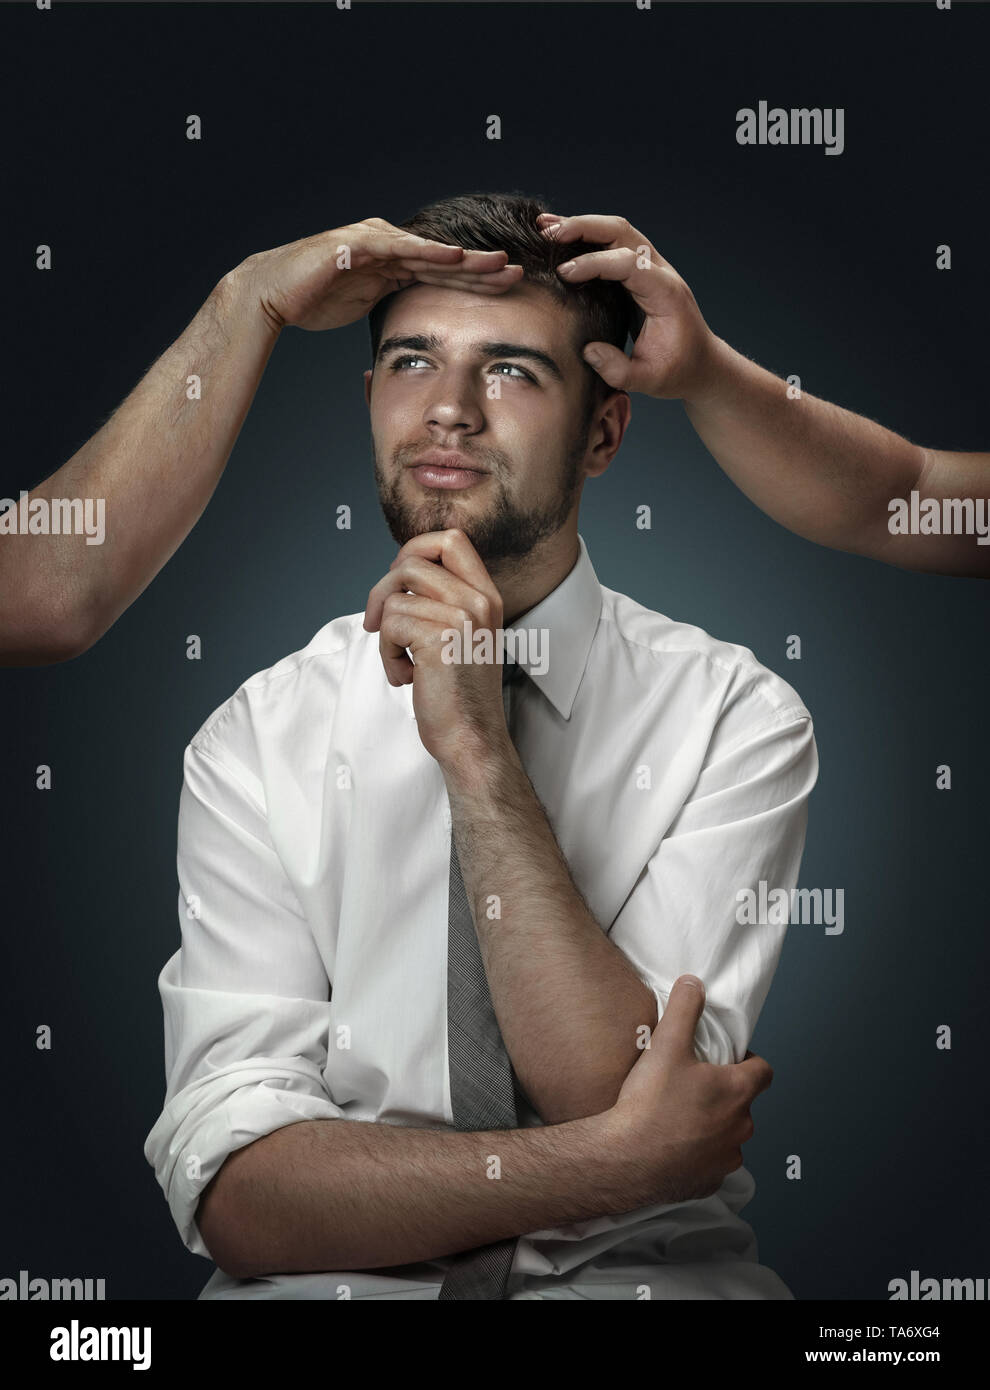 A male model surrounded by hands like his own thoughts on dark background. A young man doubts, can't choose the right decision and dreams. Concept of  - Stock Image